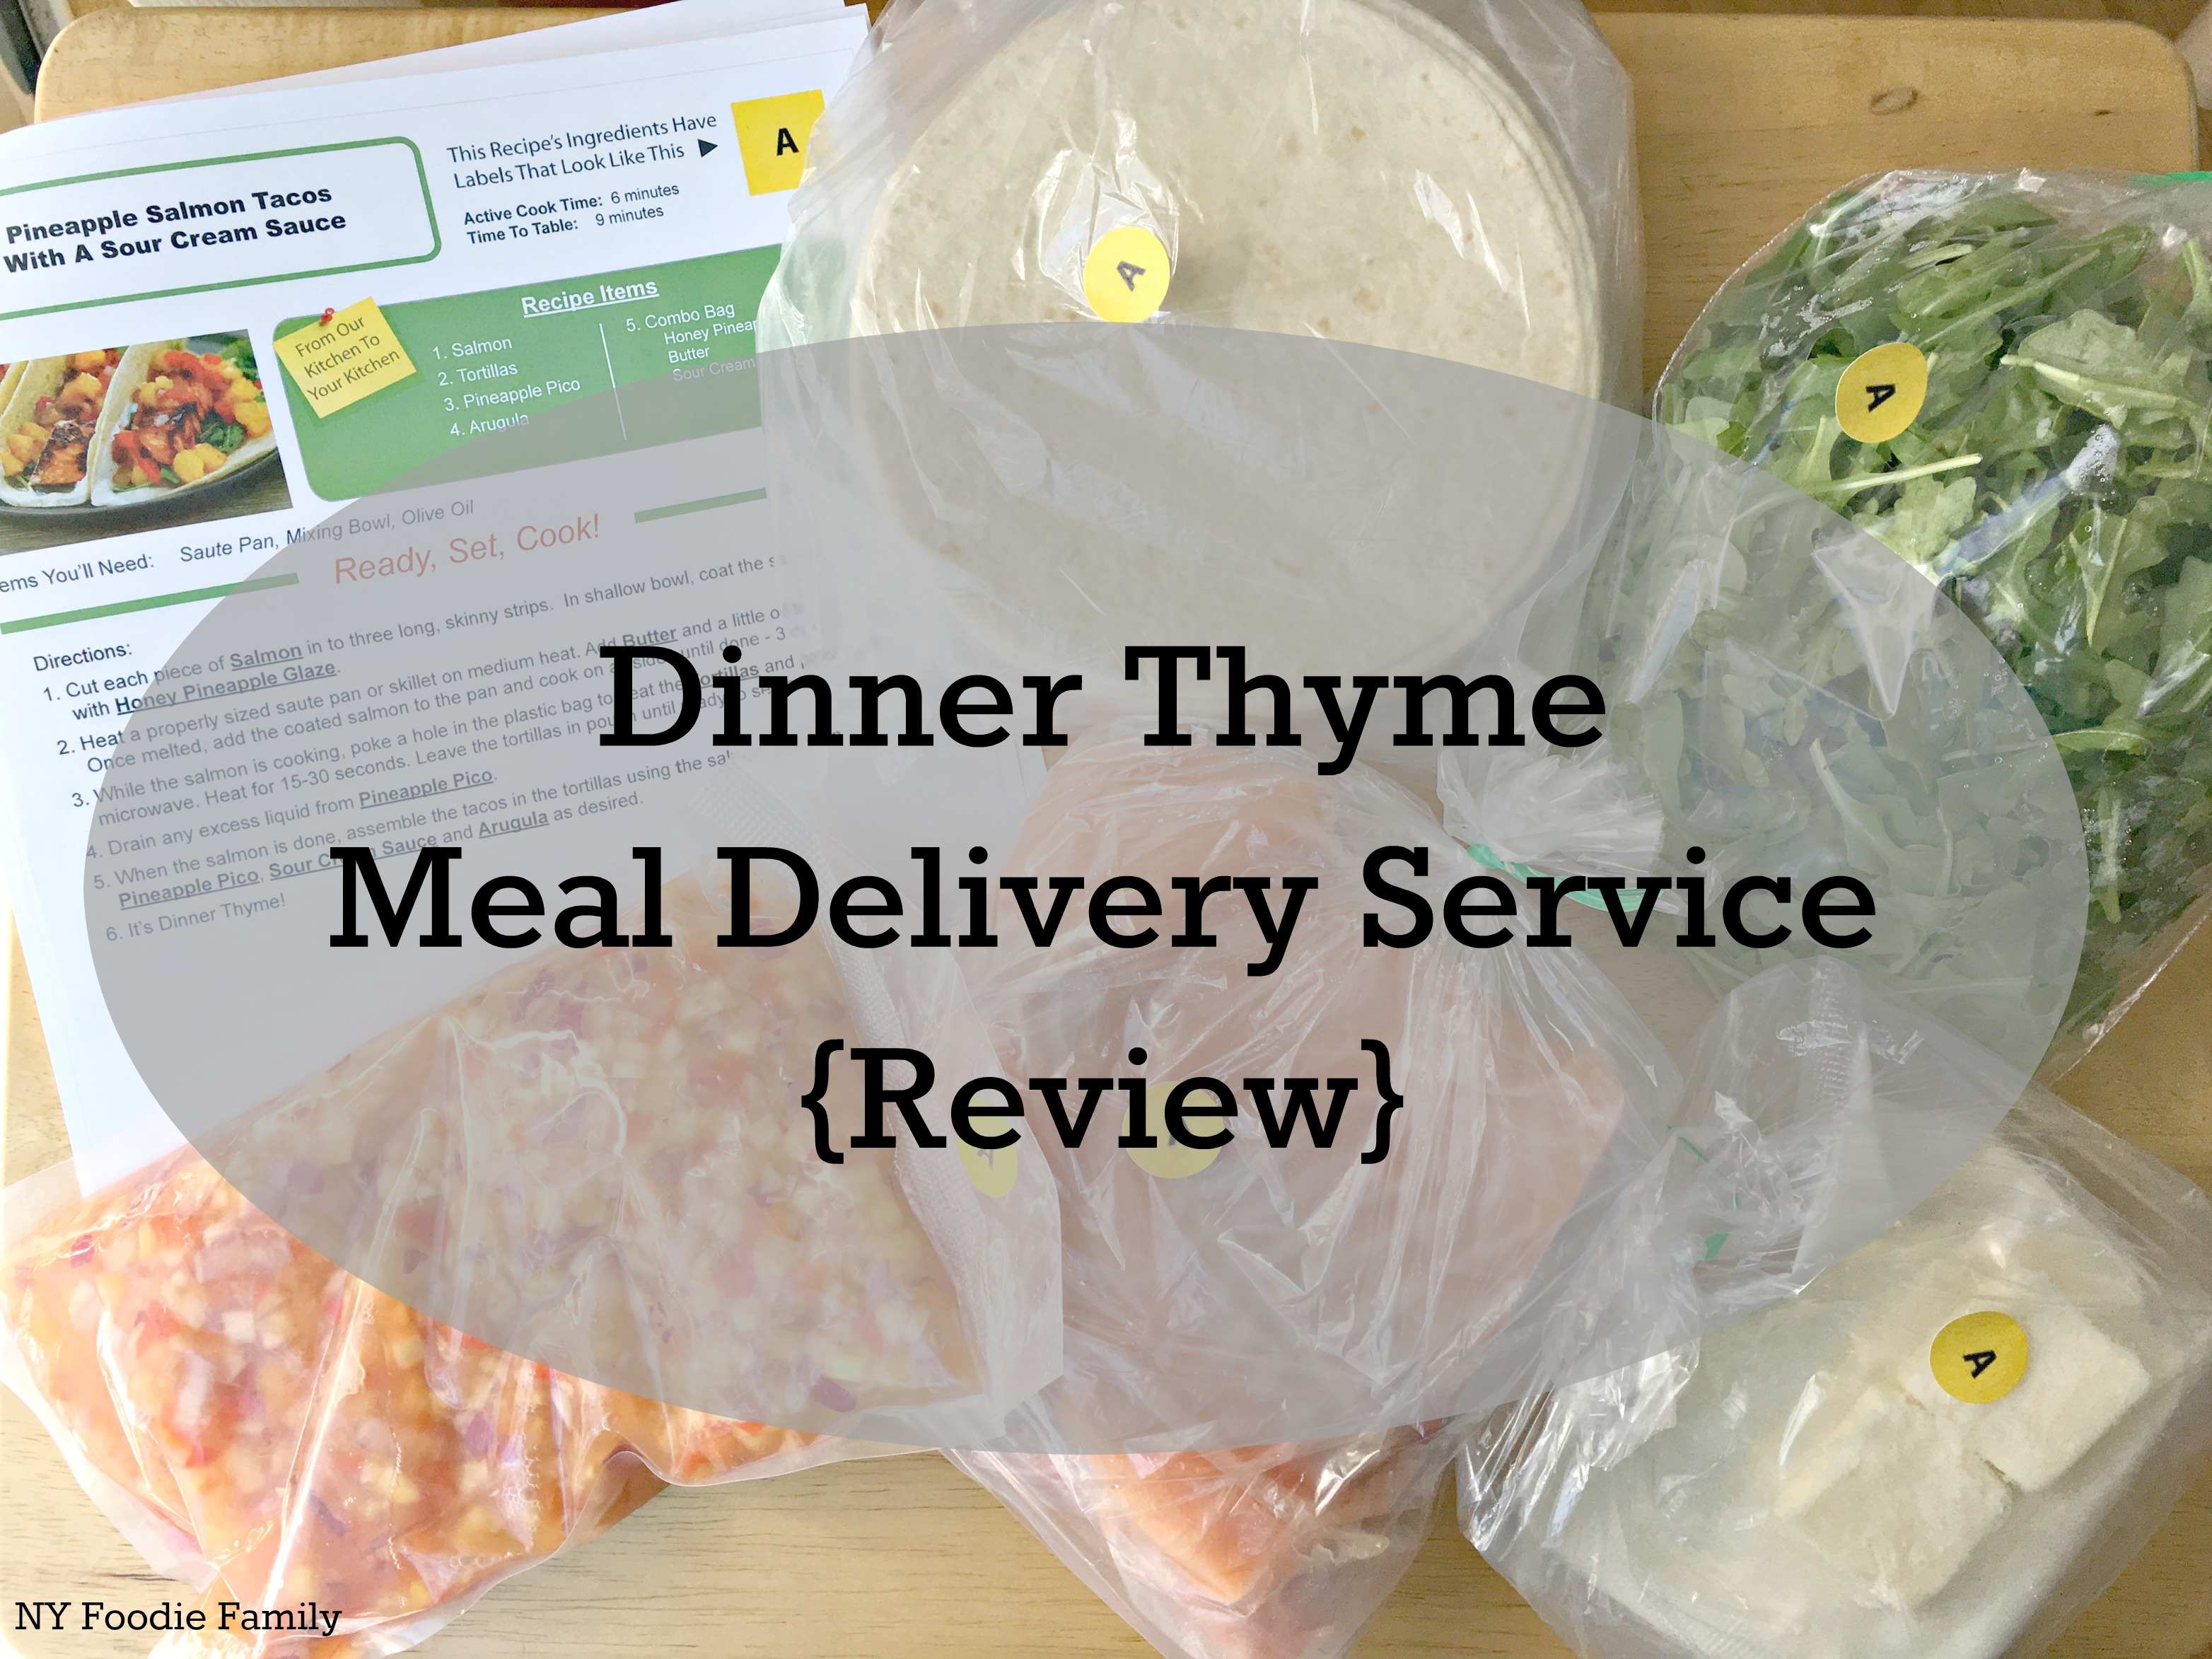 Dinner Thyme Meal Delivery Service Review NY Foodie Family